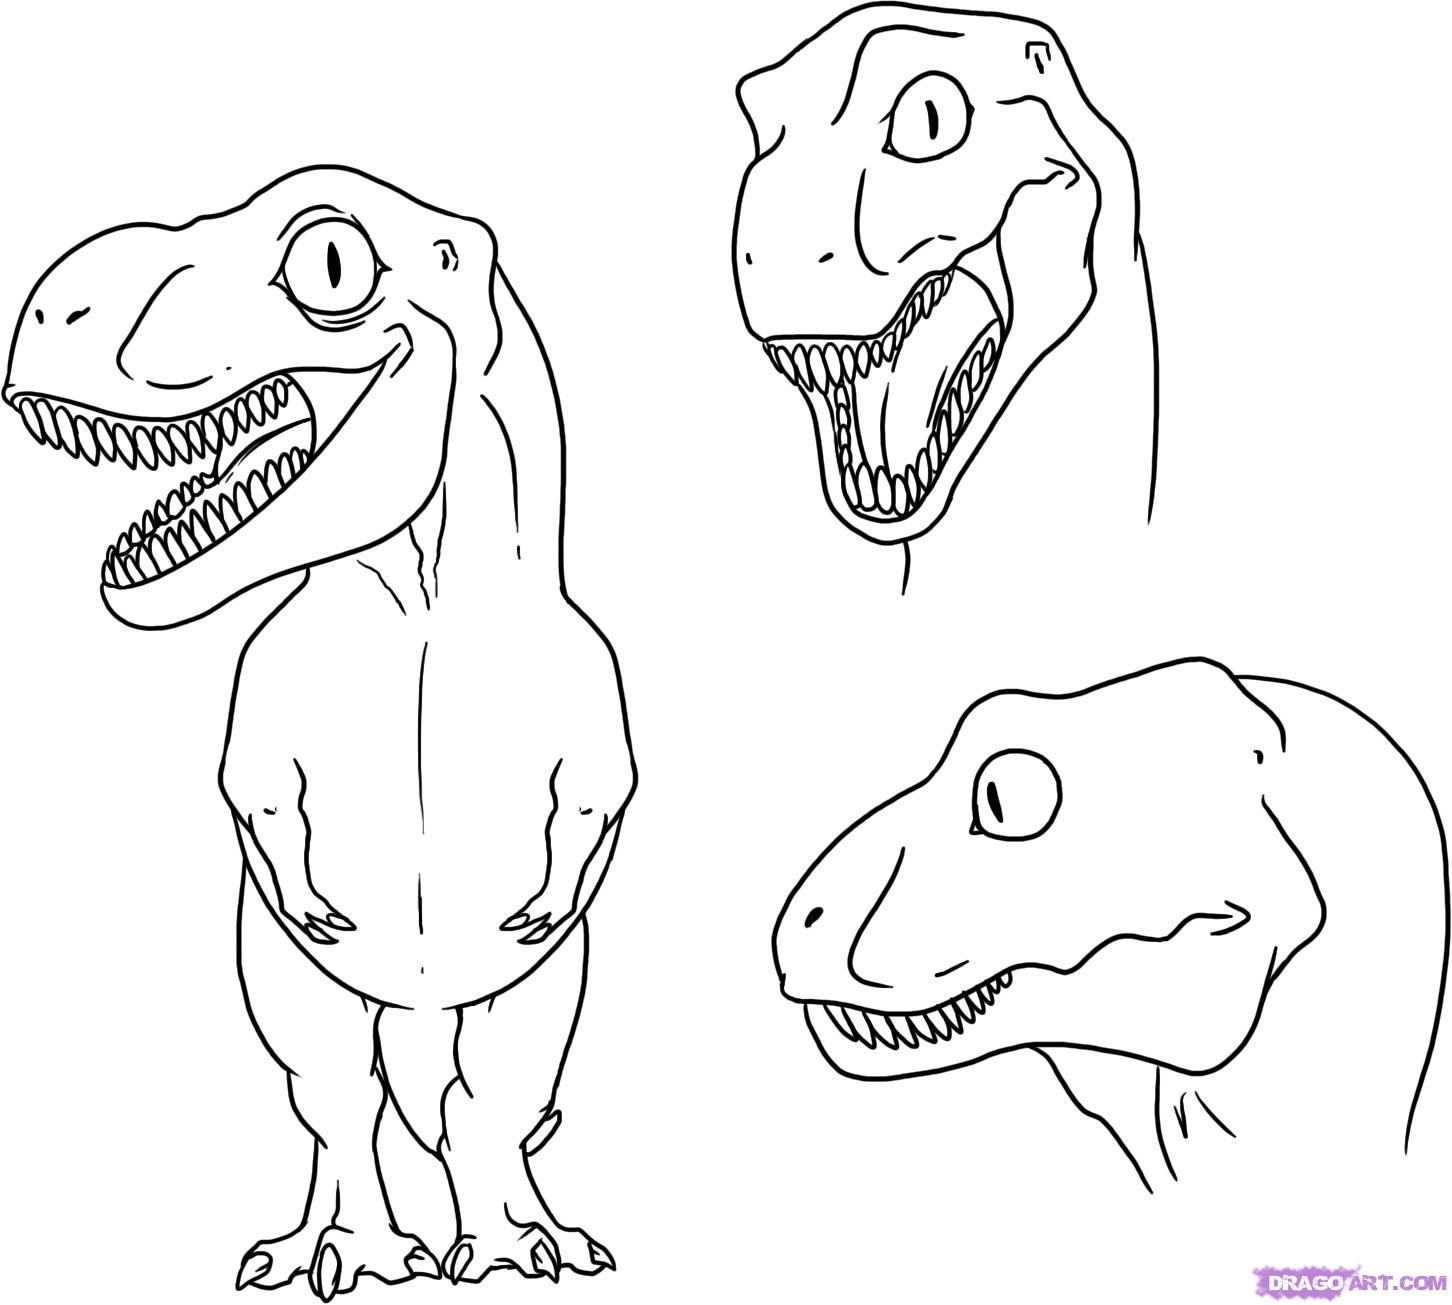 1452x1305 How To Draw A Baby Dinosaur, Step By Step, Dinosaurs, Animals